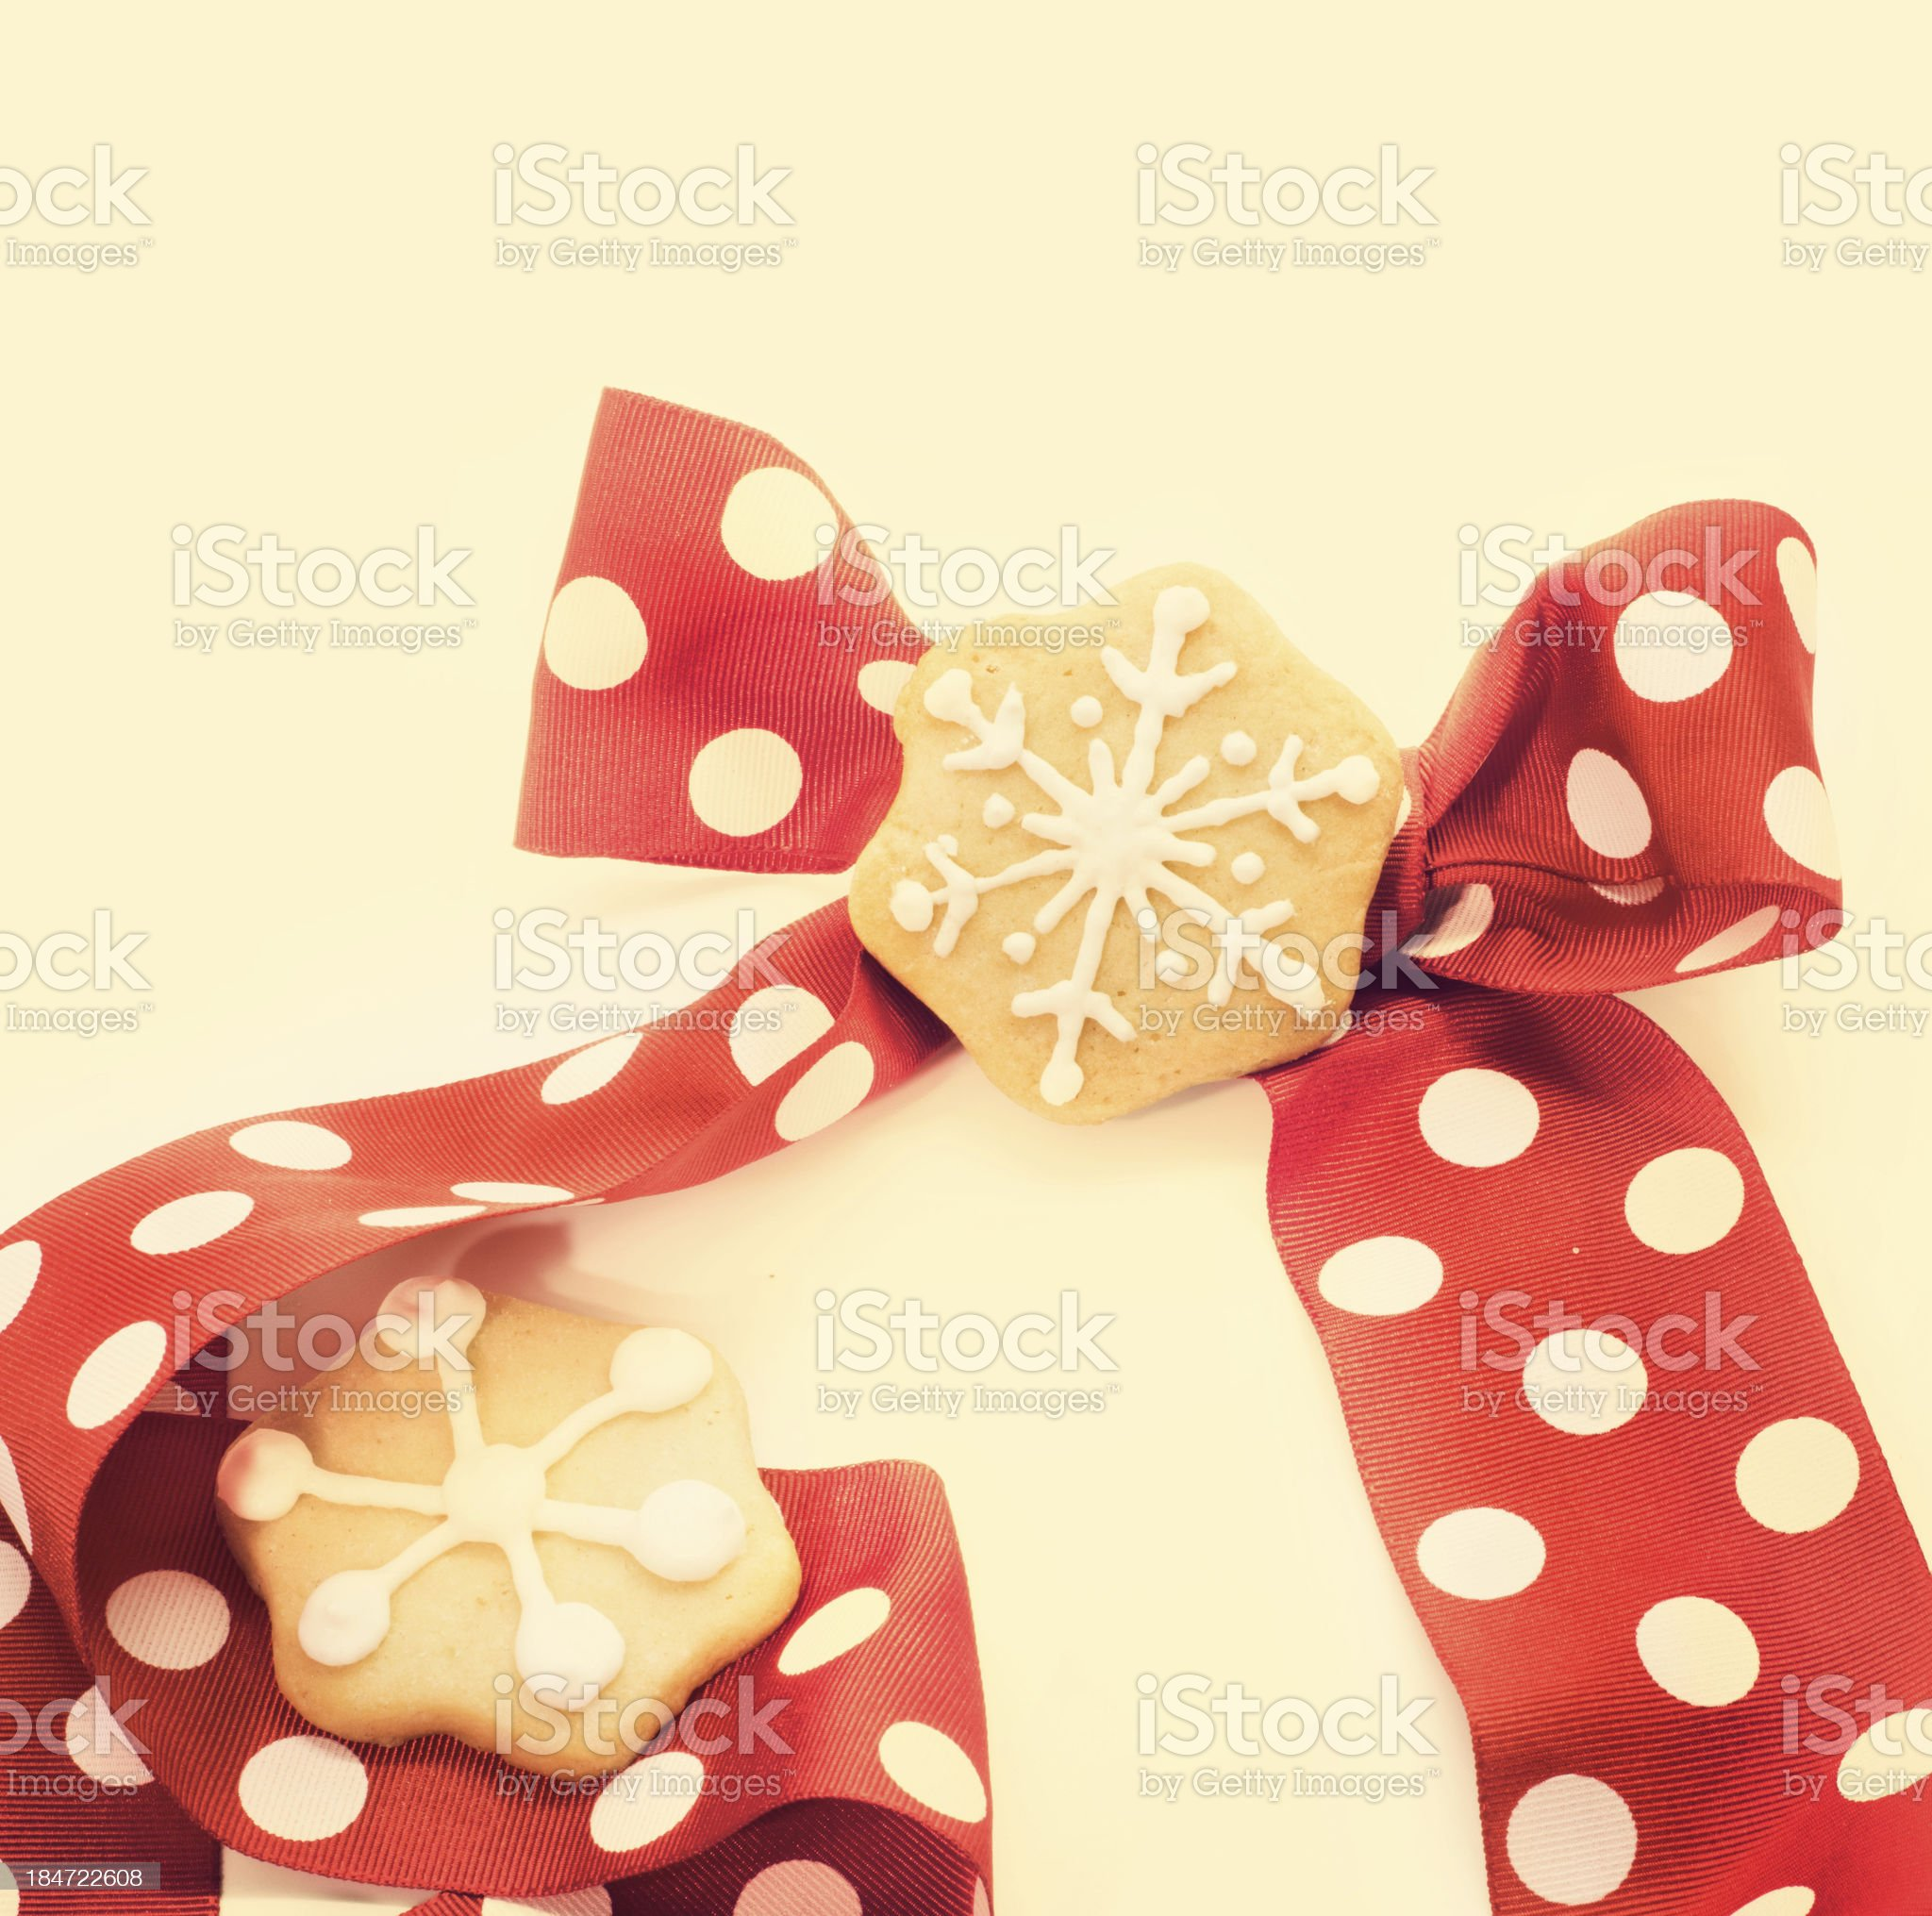 Star shape chrismtas gingerbread. Tie red with dots royalty-free stock photo